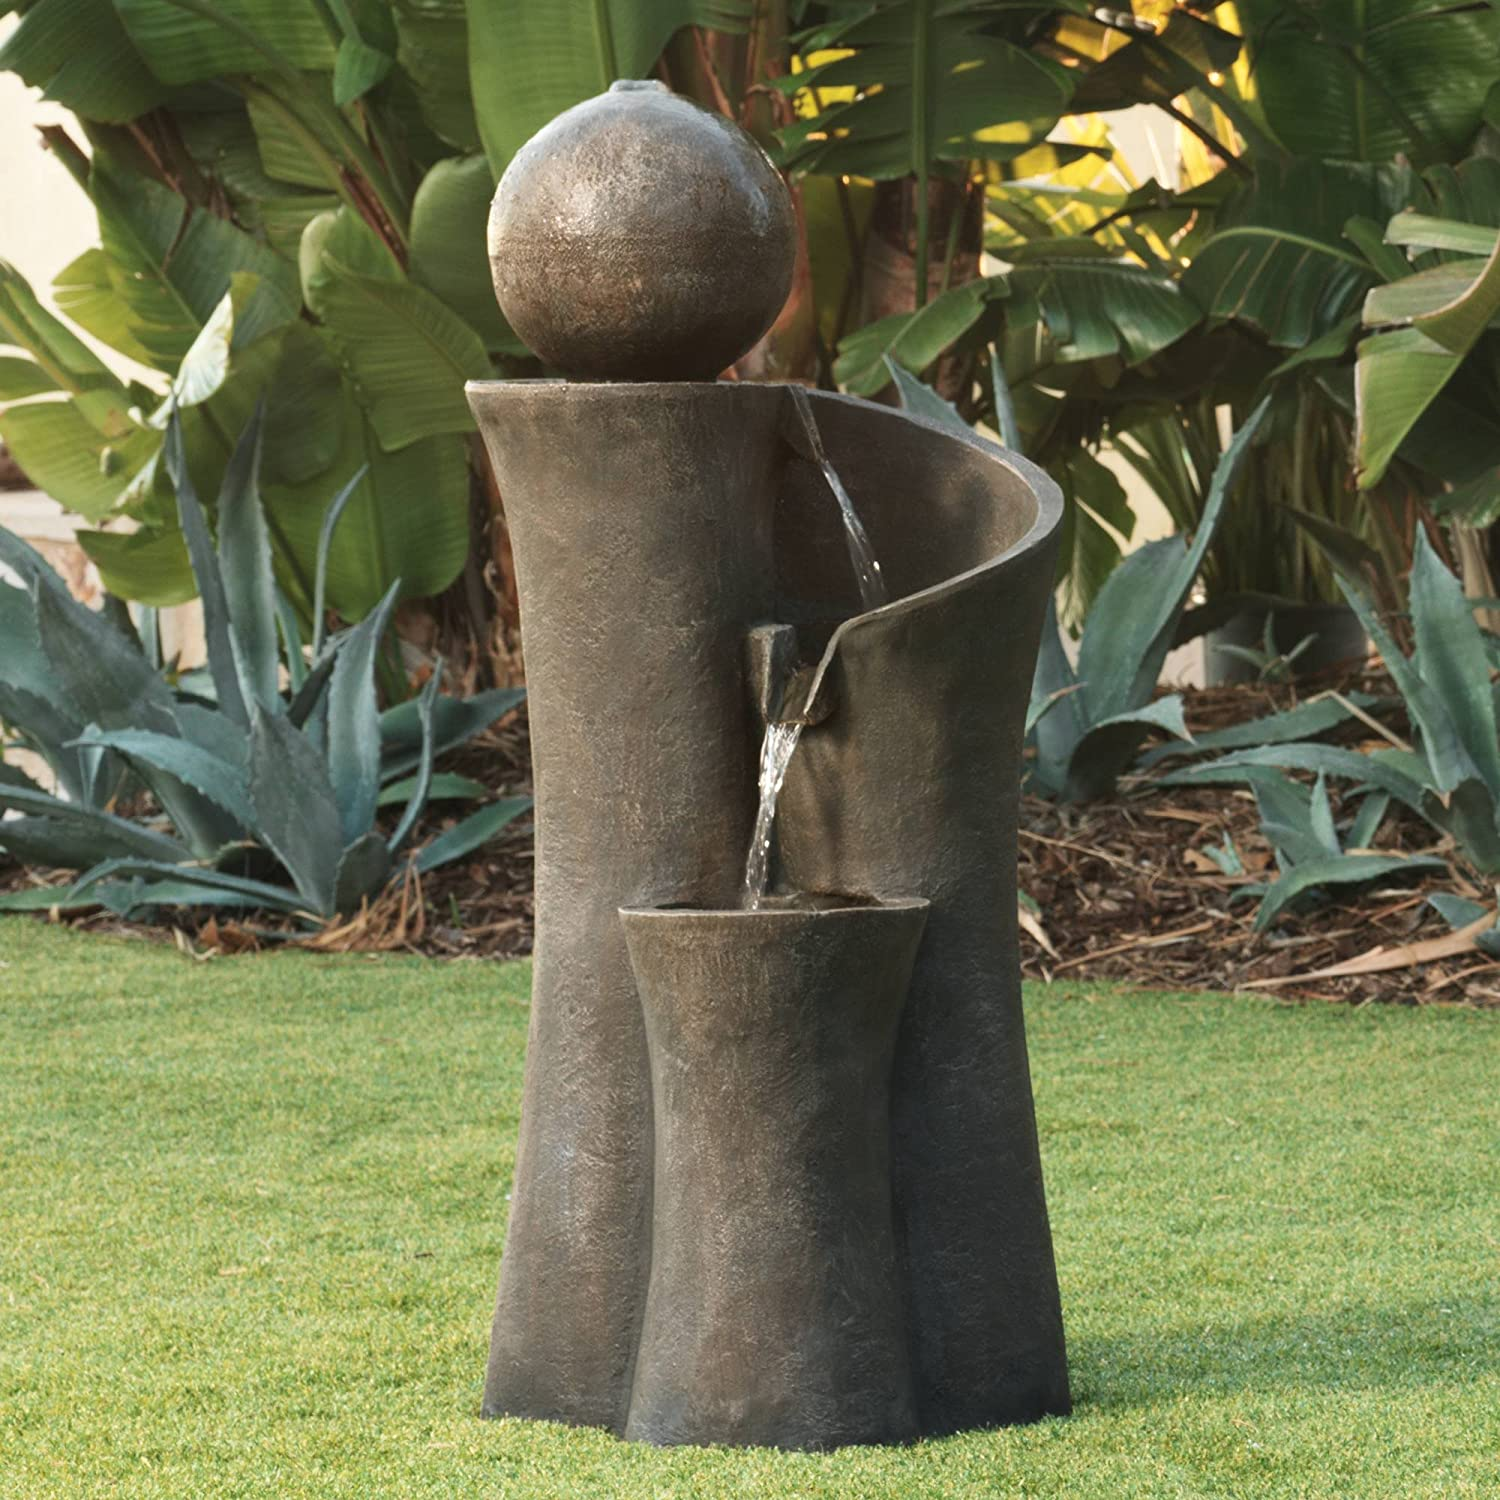 Zen Outdoor Water Fountain with Light - Choice of Styles